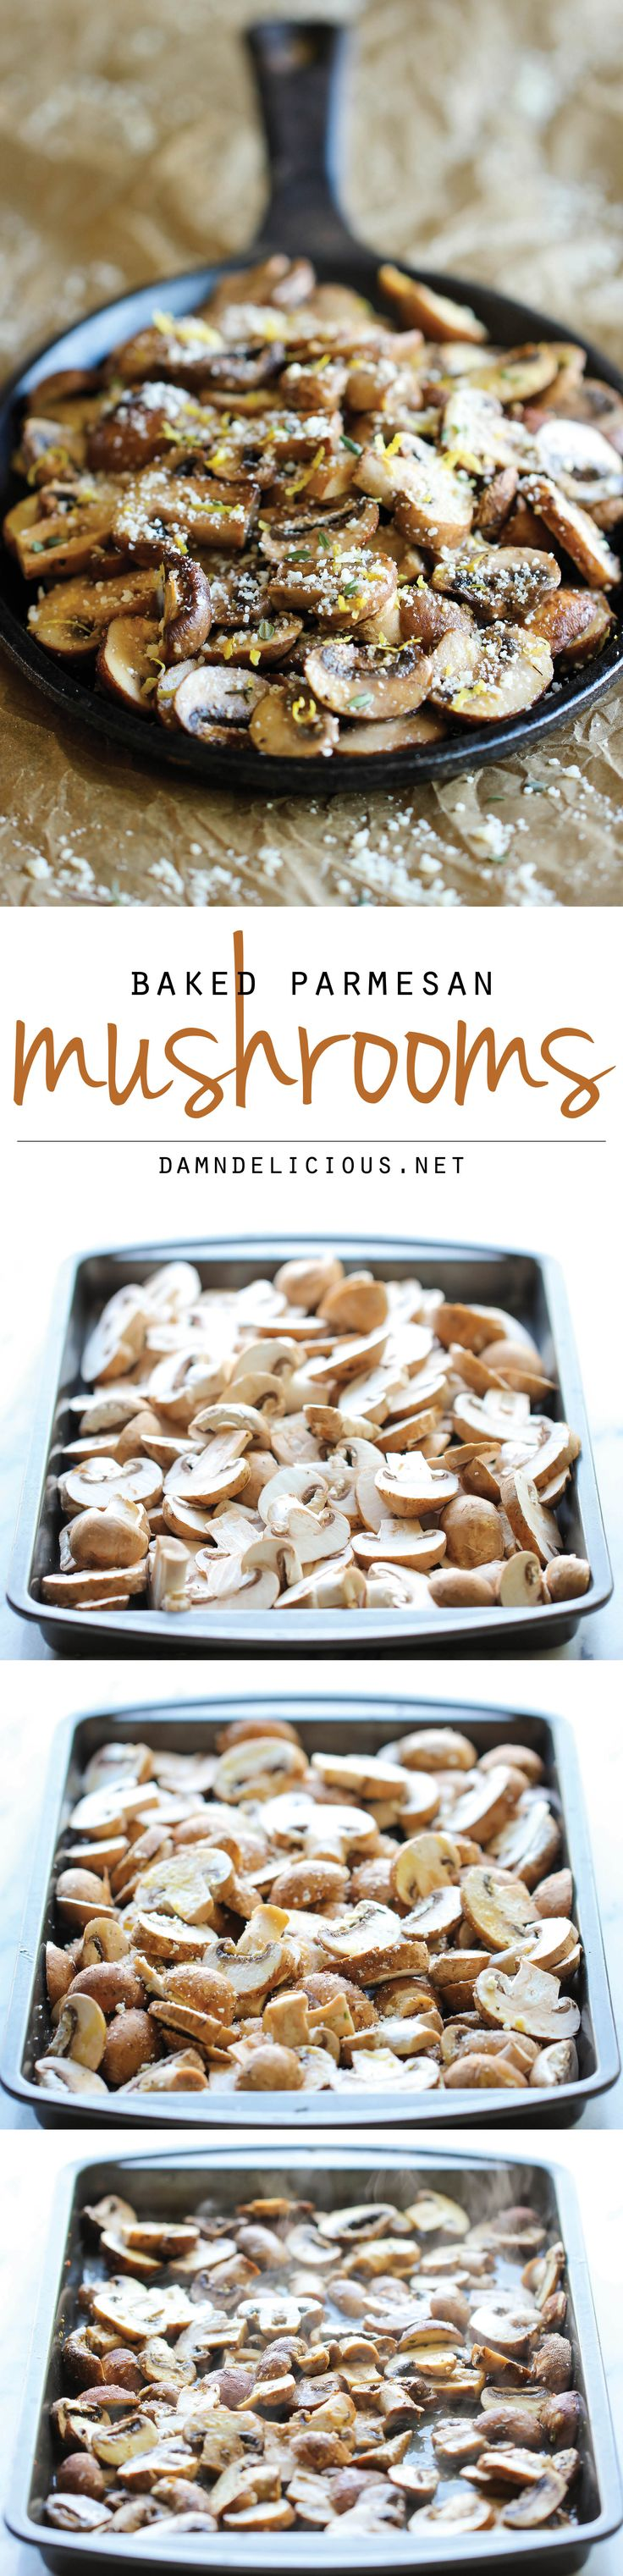 cheap flights and hotels to las vegas flyer design Baked Parmesan Mushrooms  The easiest most flavorful mushrooms you will ever make baked with parmesan thyme and lemon goodness